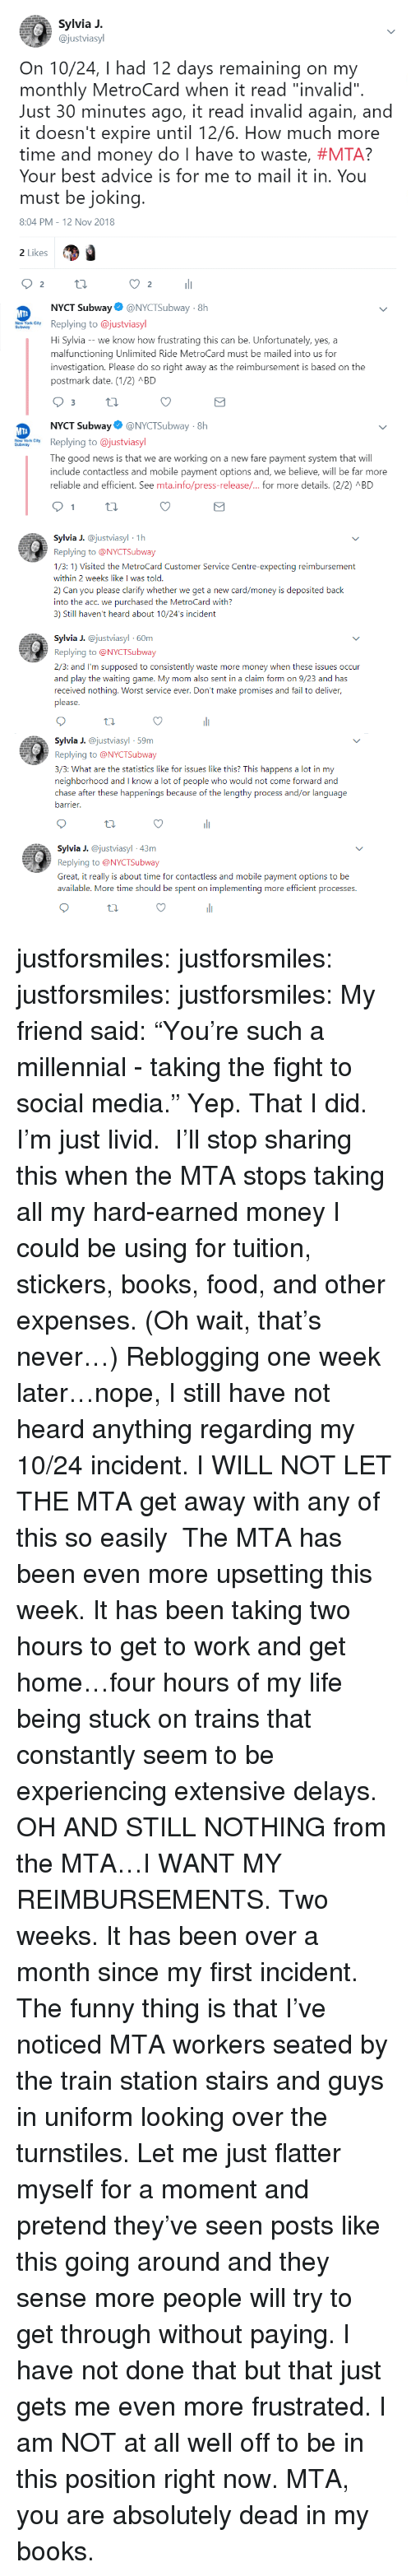 """metrocard: Sylvia J.  @justviasyl  On 10/24, I had 12 days remaining on my  monthly MetroCard when it read """"invalid""""  Just 30 minutes ago, it read invalid again, and  it doesn't expire until 12/6. How much more  time and money do I have to waste, #MTA?  Your best advice is for me to mail it in. You  must be jokin  8:04 PM-12 Nov 2018  2 Likes  2  li  2  NYCT Subway@NYCTSubway-8h  wReplying to @justviasyl  Hi Sylvia - -we know how frustrating this can be. Unfortunately, yes, a  malfunctioning Unlimited Ride MetroCard must be mailed into us for  investigation. Please do so right away as the reimbursement is based on the  postmark date. (12) ABD  NYCT Subway@NYCTSubway 8h  Replying to @justviasyl  The good news is that we are working on a new fare payment system that will  include contactless and mobile payment options and, we believe, will be far more  reliable and efficient. See mtainfo/press-release/ for more details. (2/2) л BD  a J. @justviasyl 1h  Replying to @NYCTSubway  1/3: 1) Visited the MetroCard Customer Service Centre-expecting reimbursement  within 2 weeks like I was told.  2) Can you please clarify whether we get a new card/money is deposited baclk  into the acc. we purchased the MetroCard with?  3) Still haven't heard about 10/24's incident  Sylvia J. @justviasyl 60m  Replying to @NYCTSubway  2/3: and I'm supposed to consistently waste more money when these issues occur  and play the waiting game. My mom also sent in a claim form on 9/23 and has  received nothing. Worst service ever. Don't make promises and fail to deliver,  please  Syia J. @justviasyl 59m  Replying to @NYCTSubway  3/3: What are the statistics like for issues like this? This happens a lot in my  neighborhood and I know a lot of people who would not come forward and  chase after these happenings because of the lengthy process and/or language  arrier  Sylia J. @justviasyl 43m  Replying to @NYCTSubway  Great, it really is about time for contactless and mobile payment options to be  availab"""